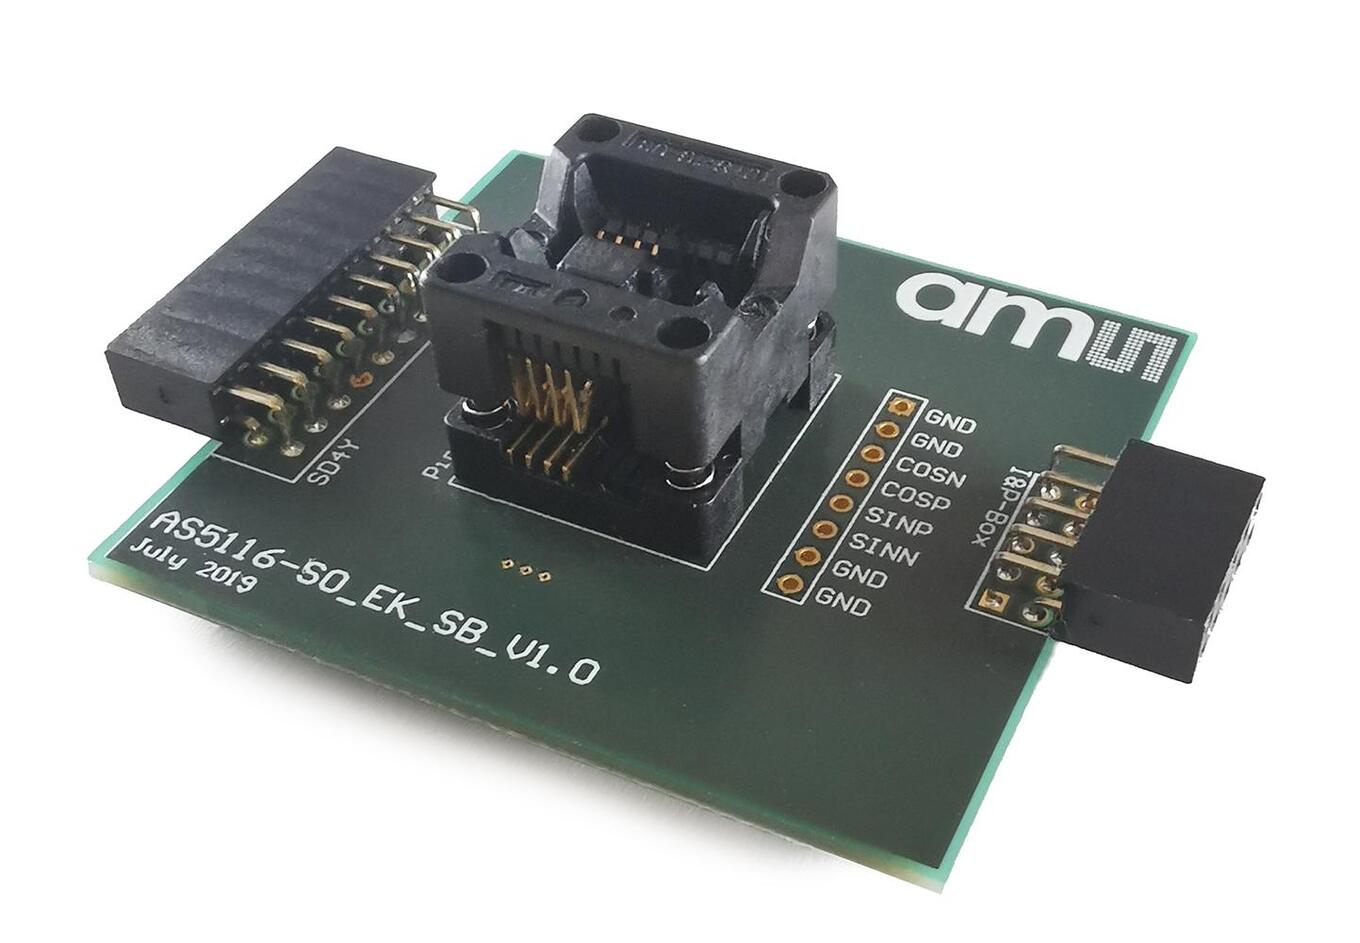 AS5116 Socket Board (Perspective View)